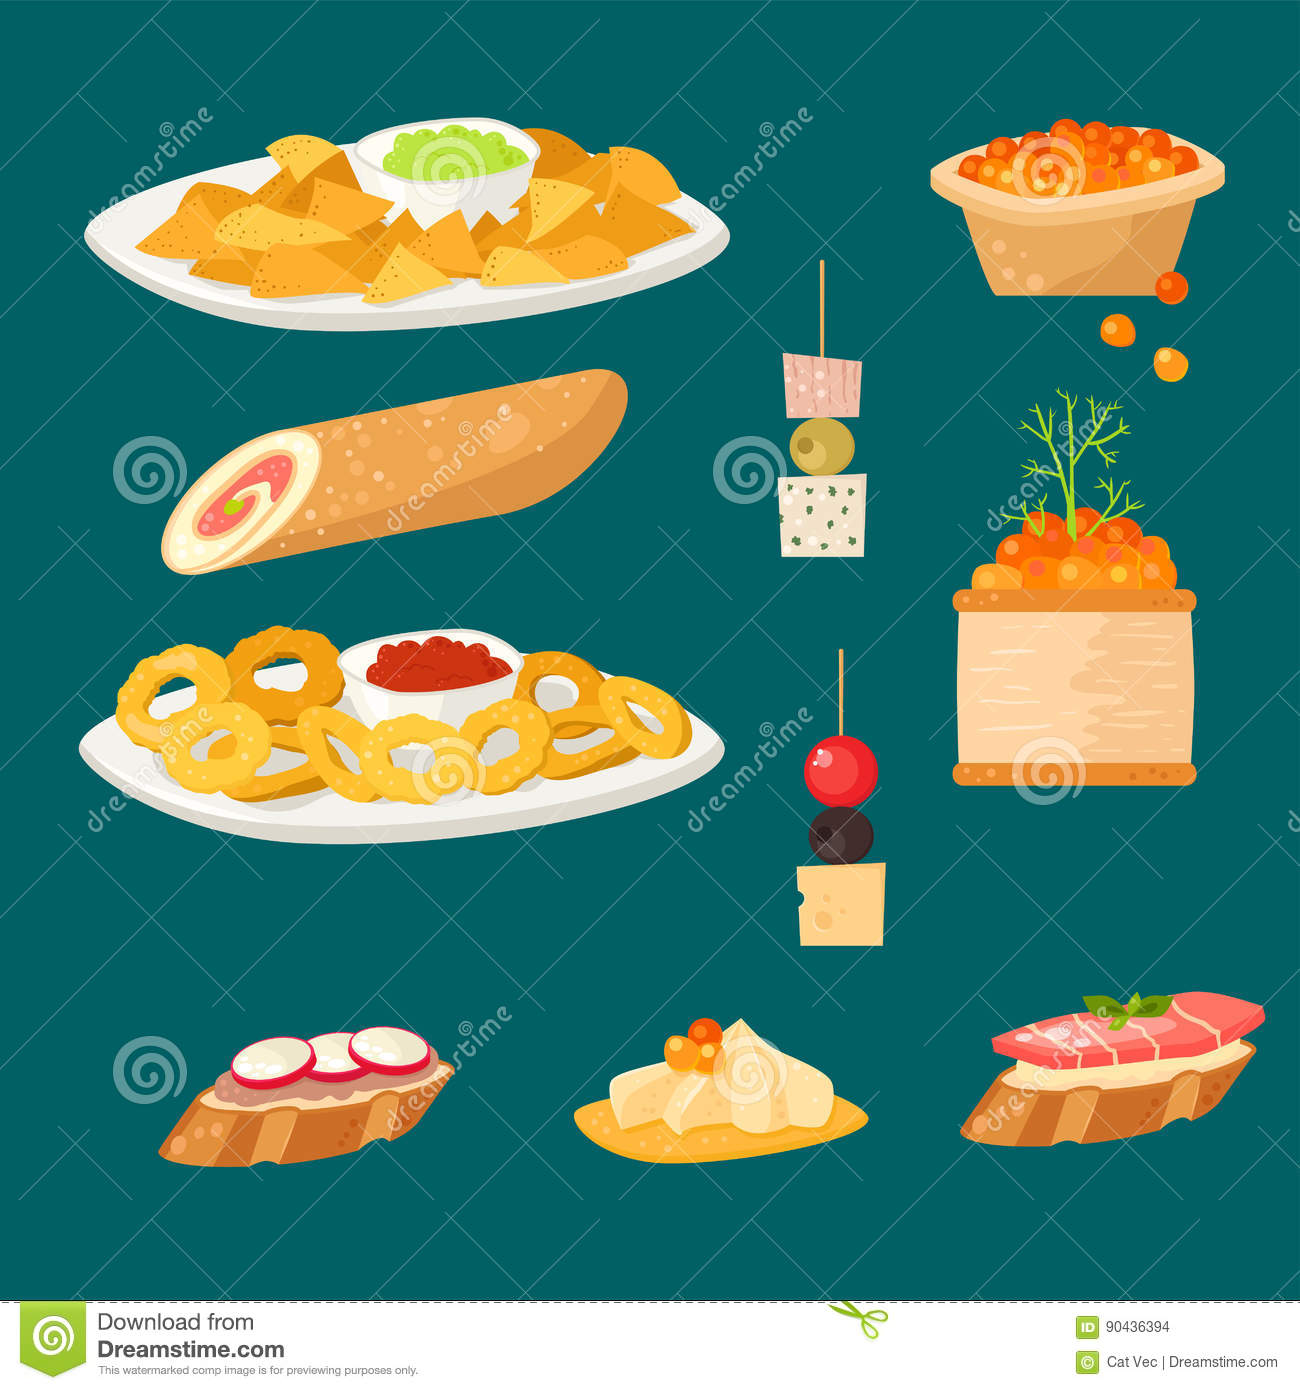 Dish cartoons illustrations vector stock images 44788 for Fish and cheese